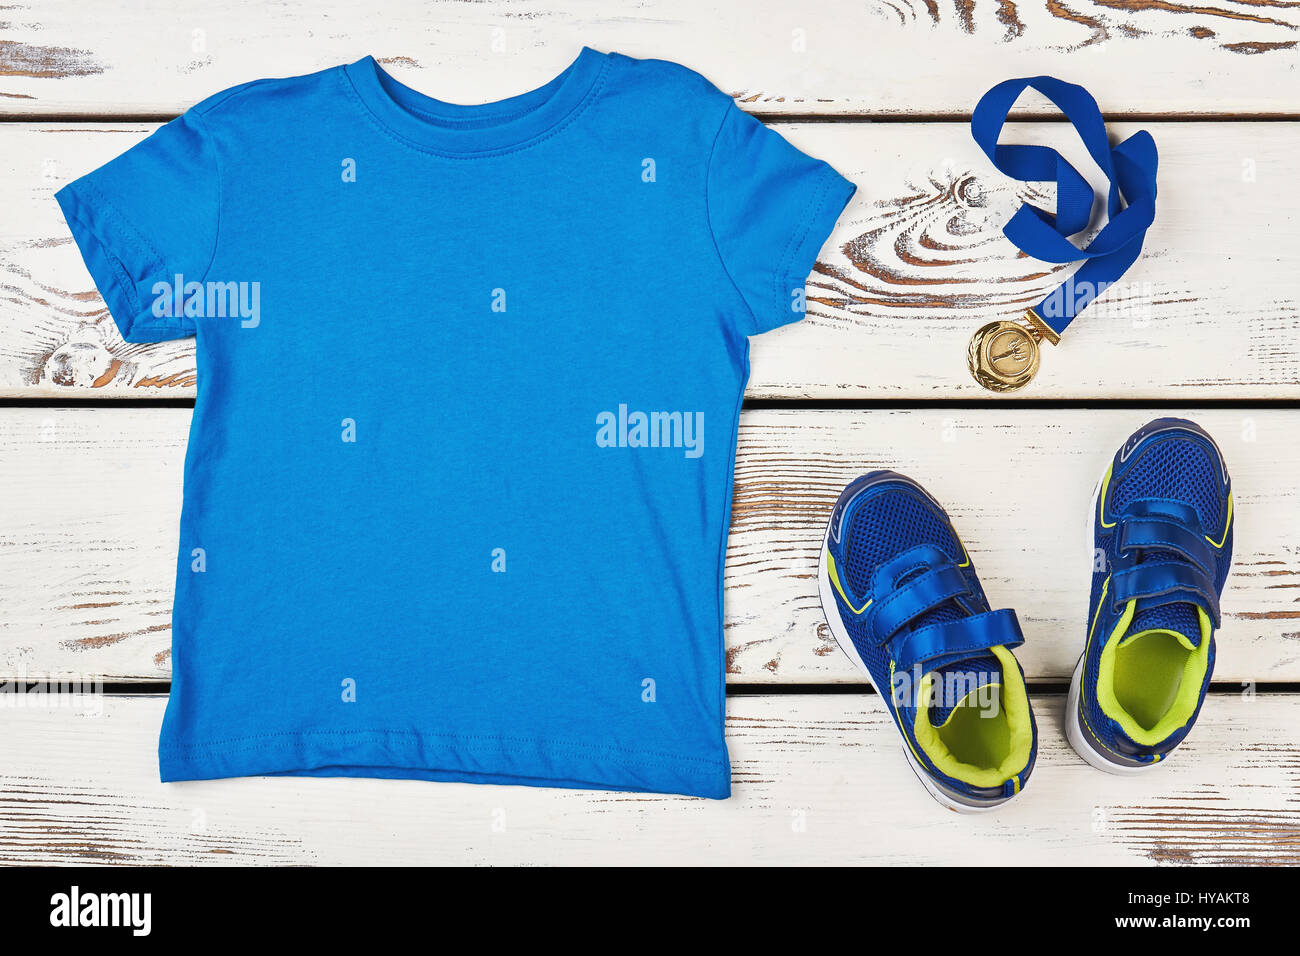 T-shirt, sneakers and medal. - Stock Image